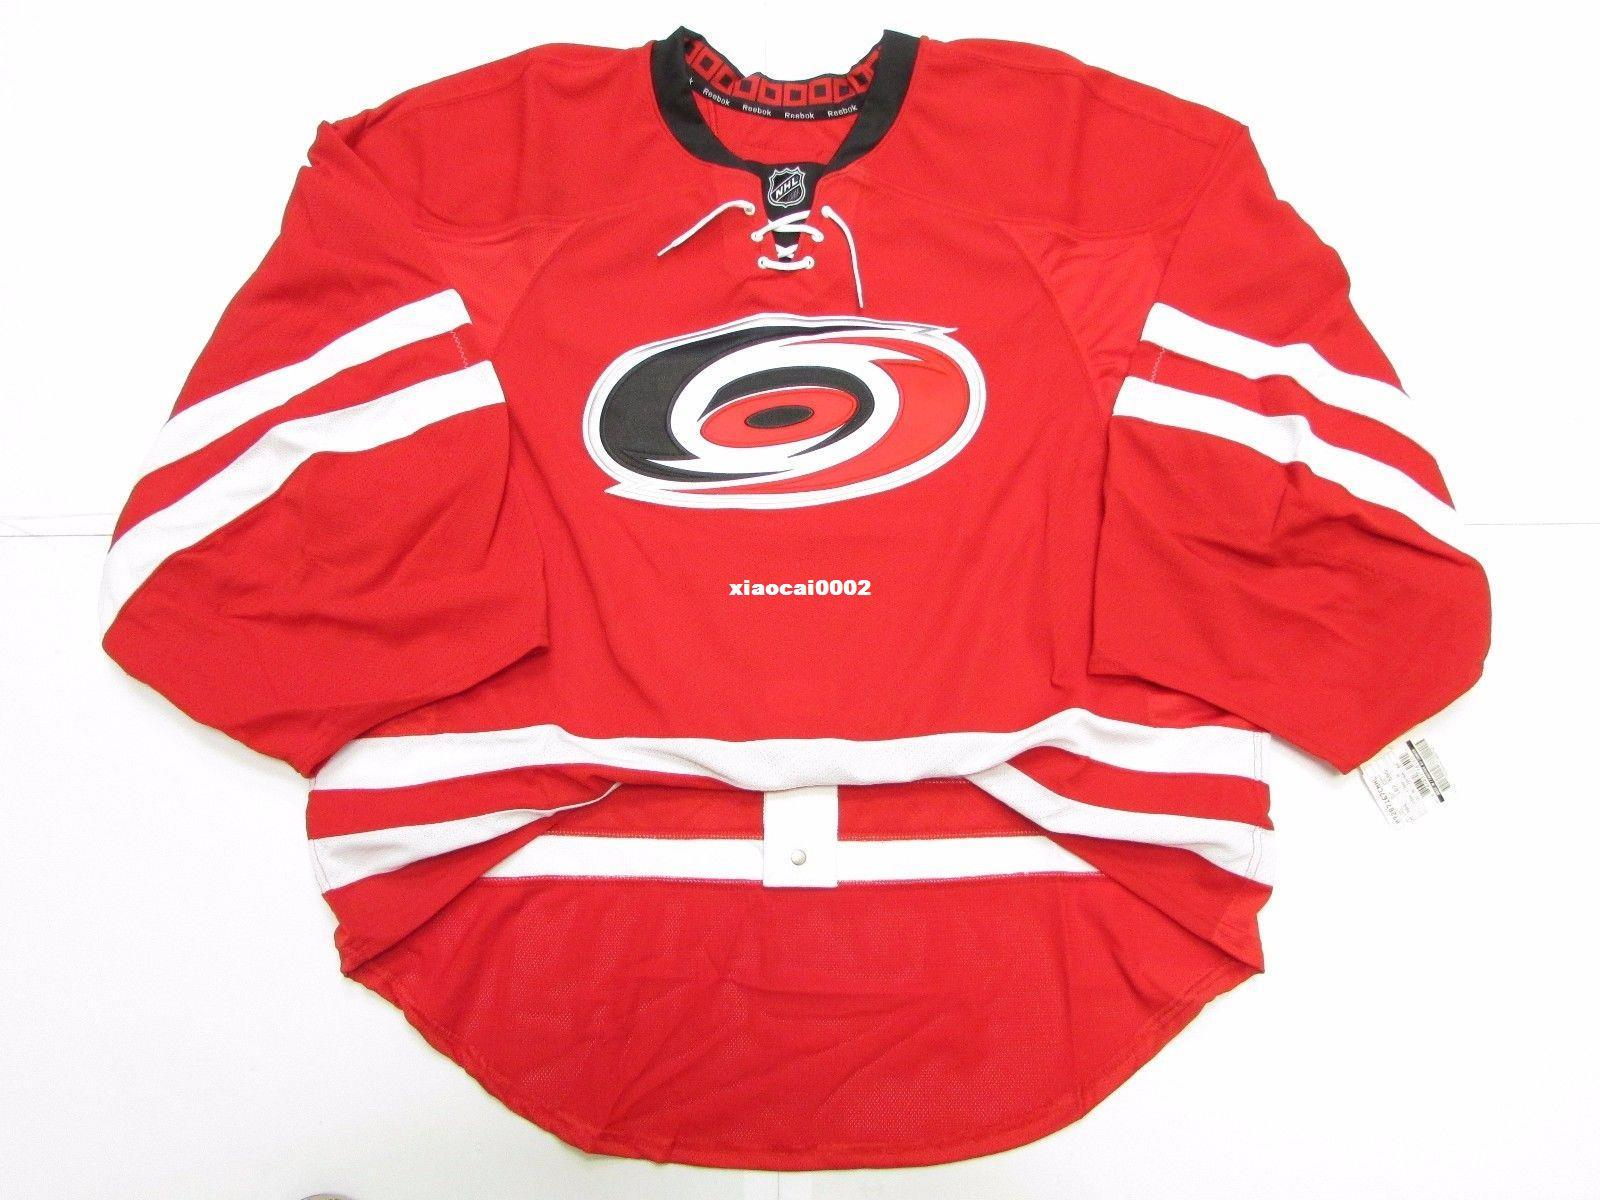 newest 6ebe7 5a6a9 Cheap Custom CAROLINA HURRICANES AUTHENTIC HOME EDGE JERSEY GOALIE CUT 60  Mens Stitched Personalized hockey Jerseys